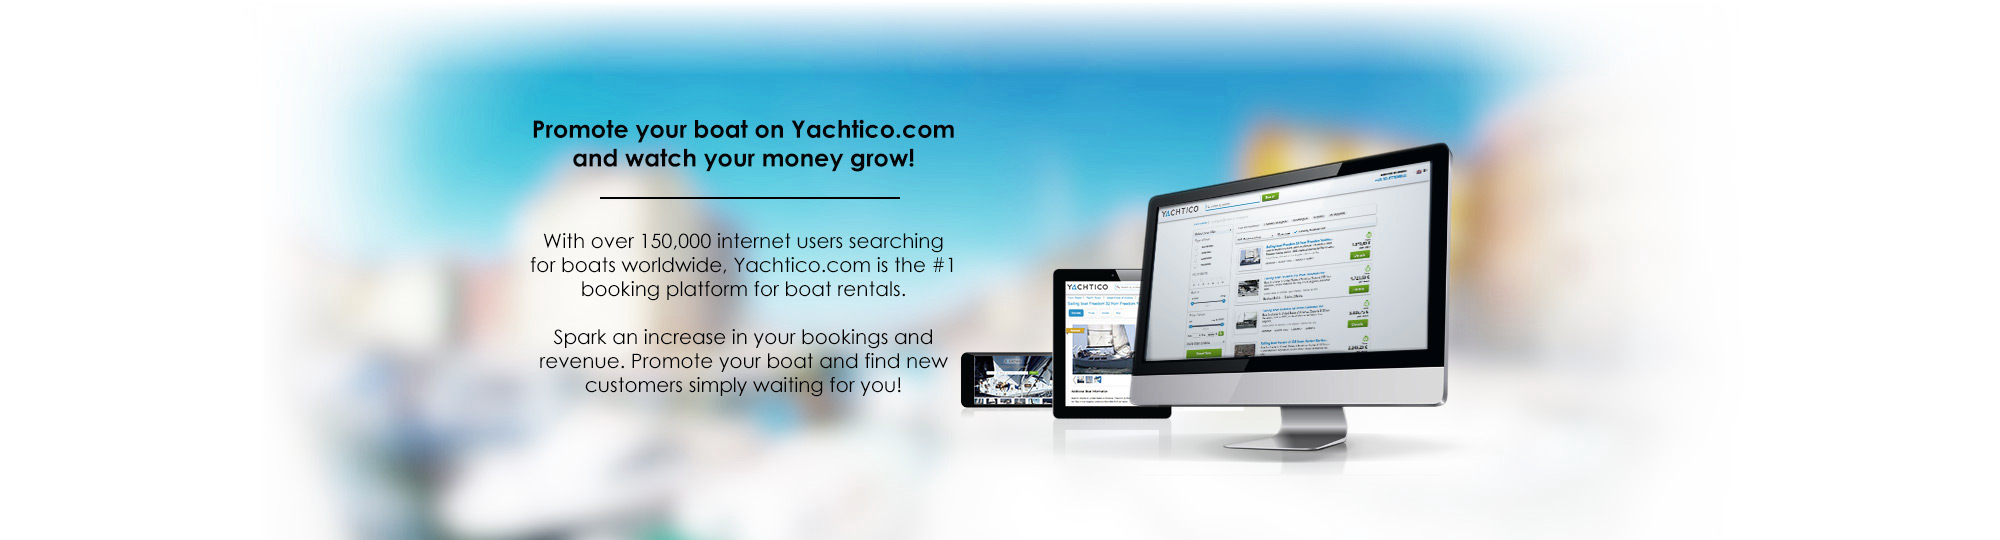 Advertise on YACHTICO.com